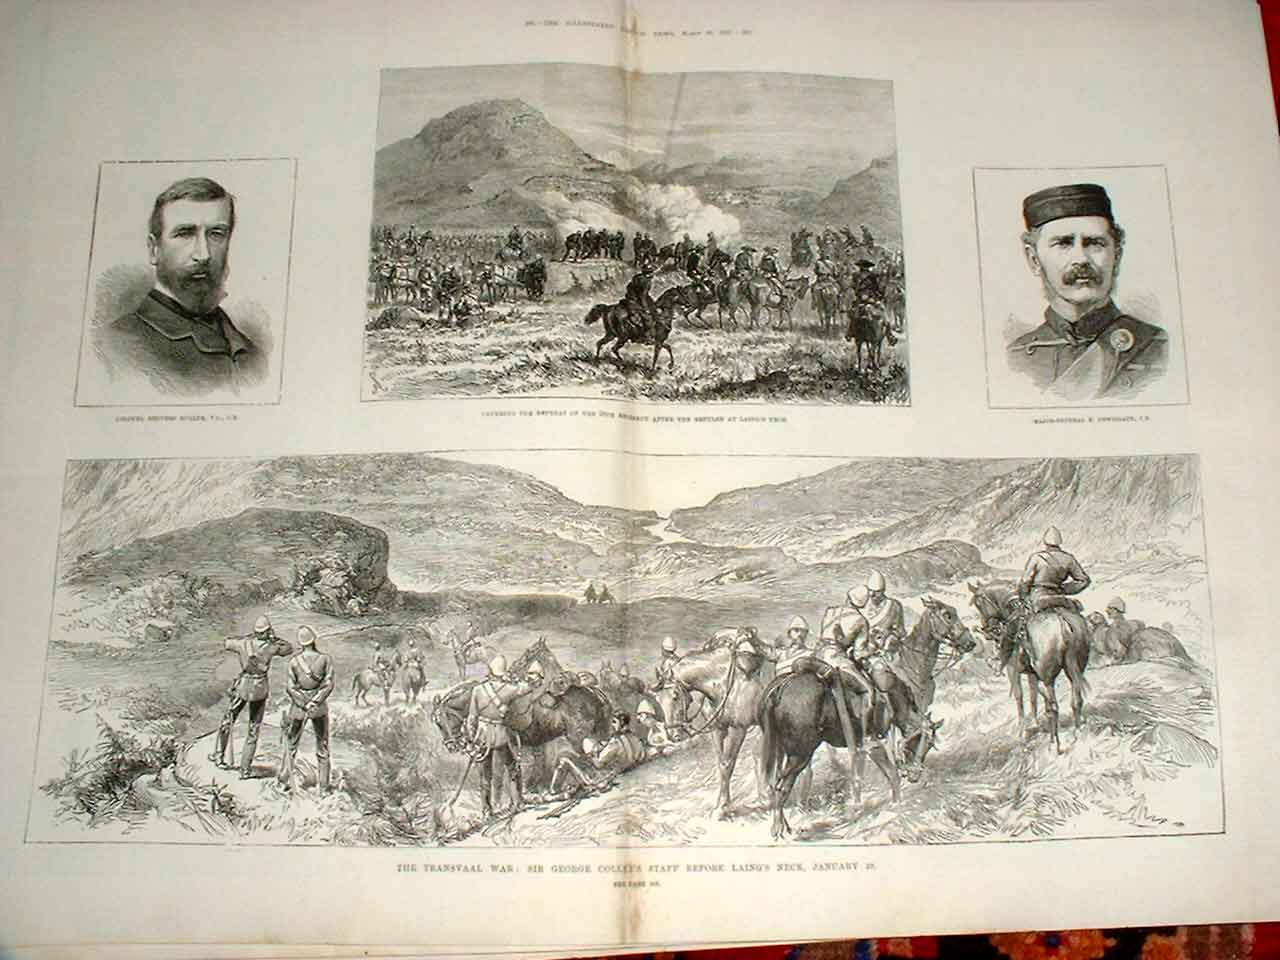 Print Transvaal War Colley'S Staff Before Laing'S Neck Africa 07Taaa0 Old Original